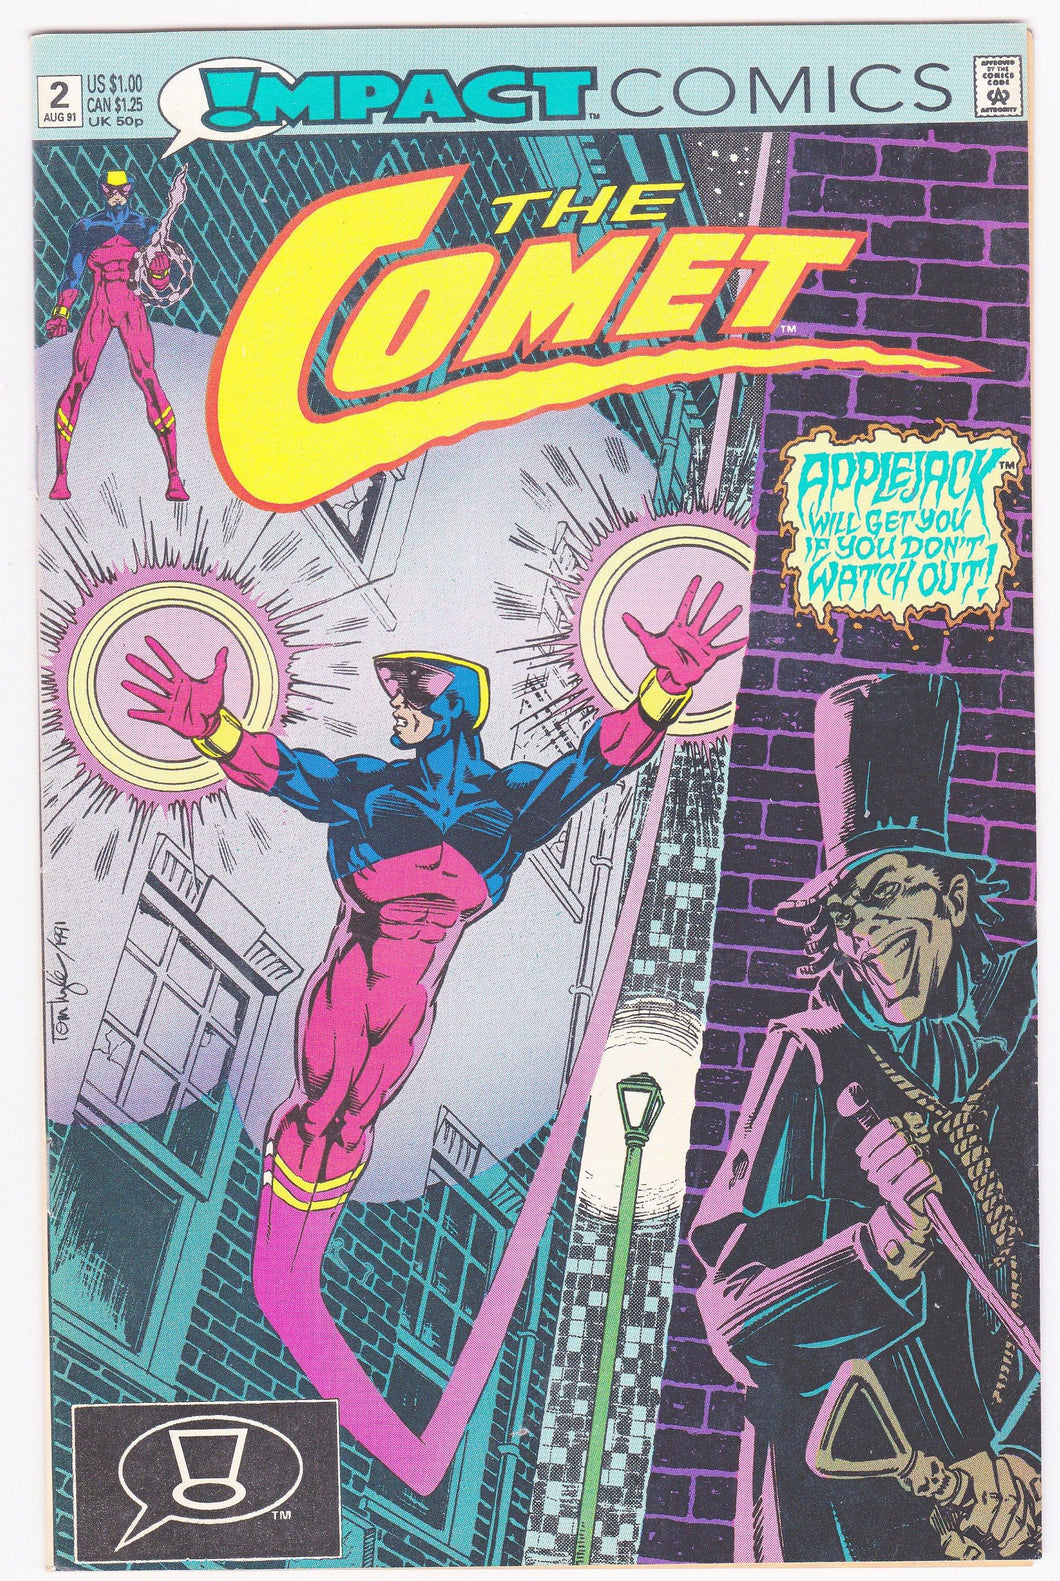 The Comet Issue #2 August 1991 Impact Comics Comic Book - TulipStuff